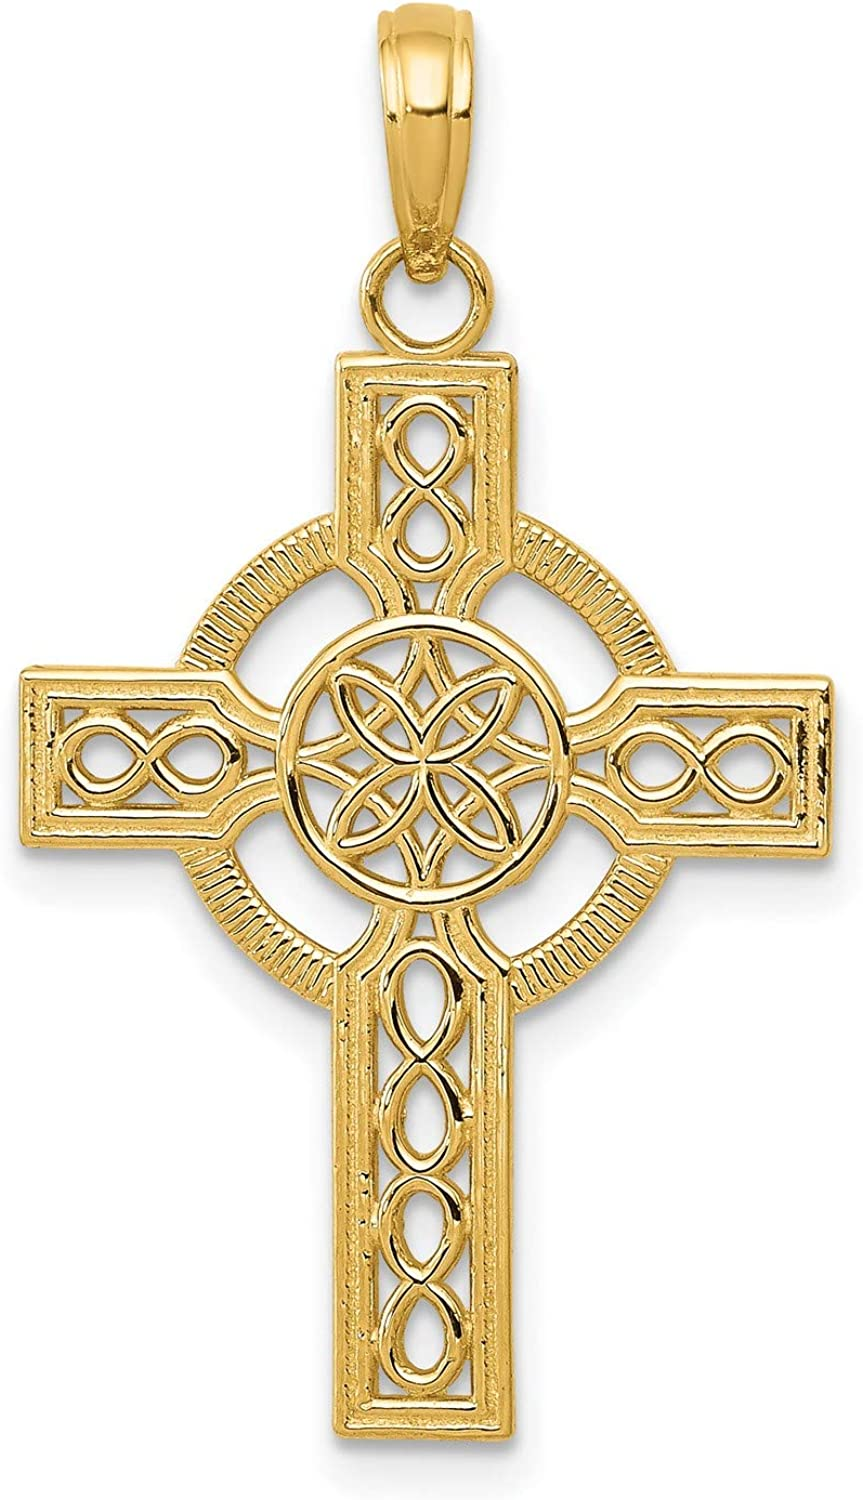 Max 72% OFF Textured High 35% OFF Cross Pendant with Celtic Real in Pattern Knot 14k